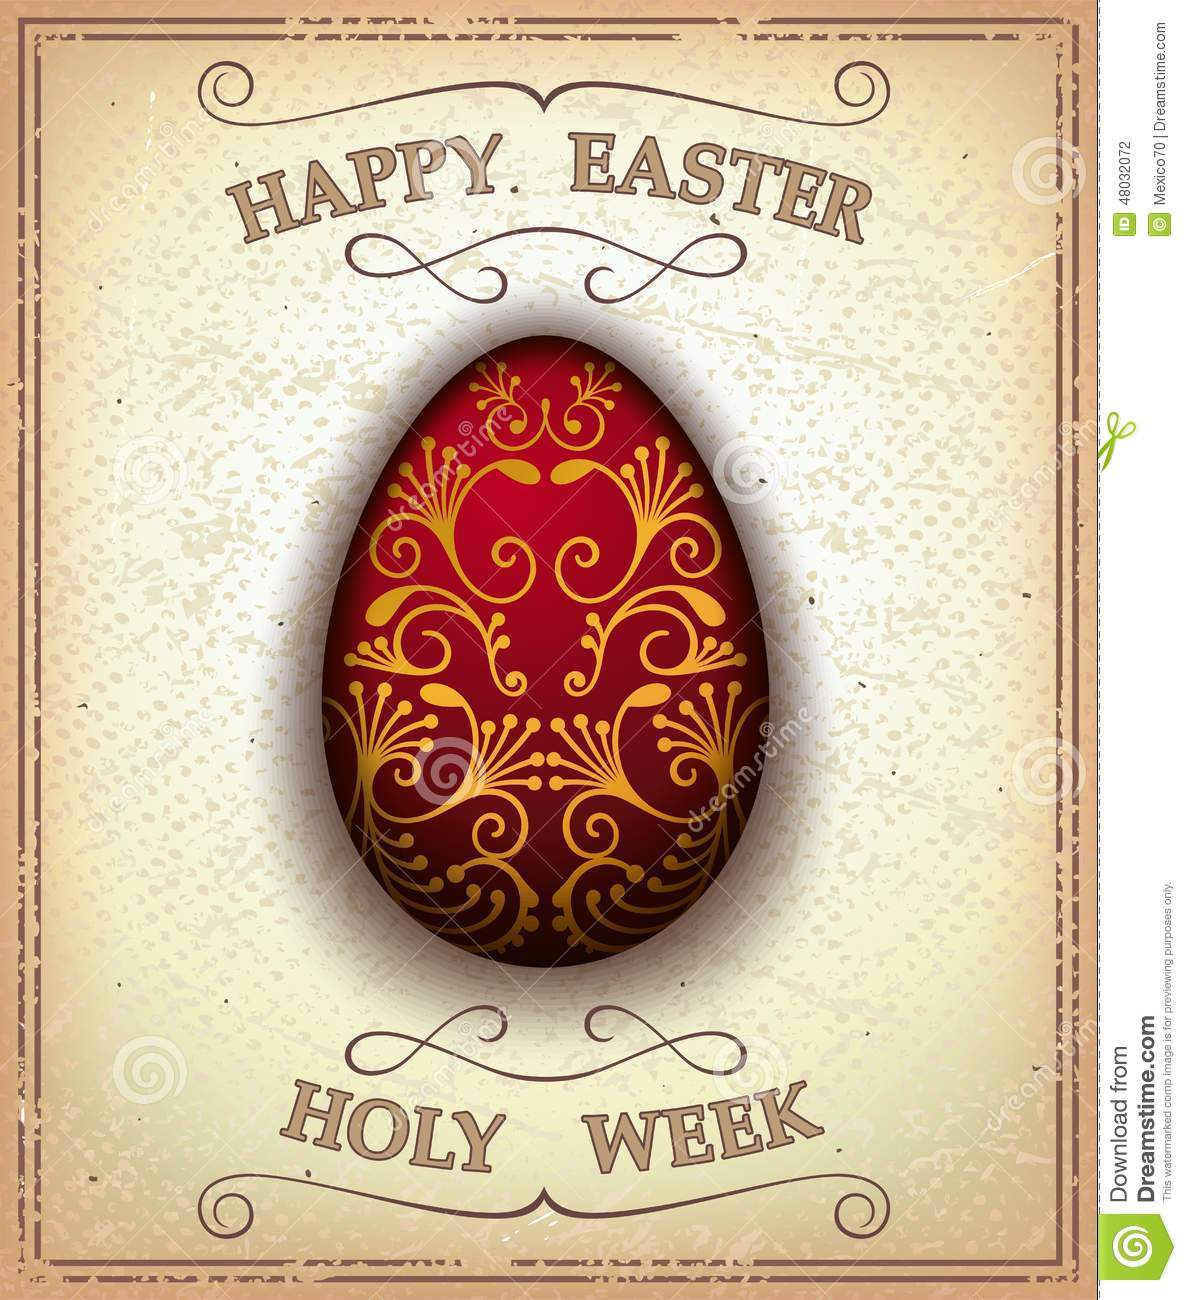 Easter Egg Decor Vintage Happy Easter And Holy Week Card Stock Vector